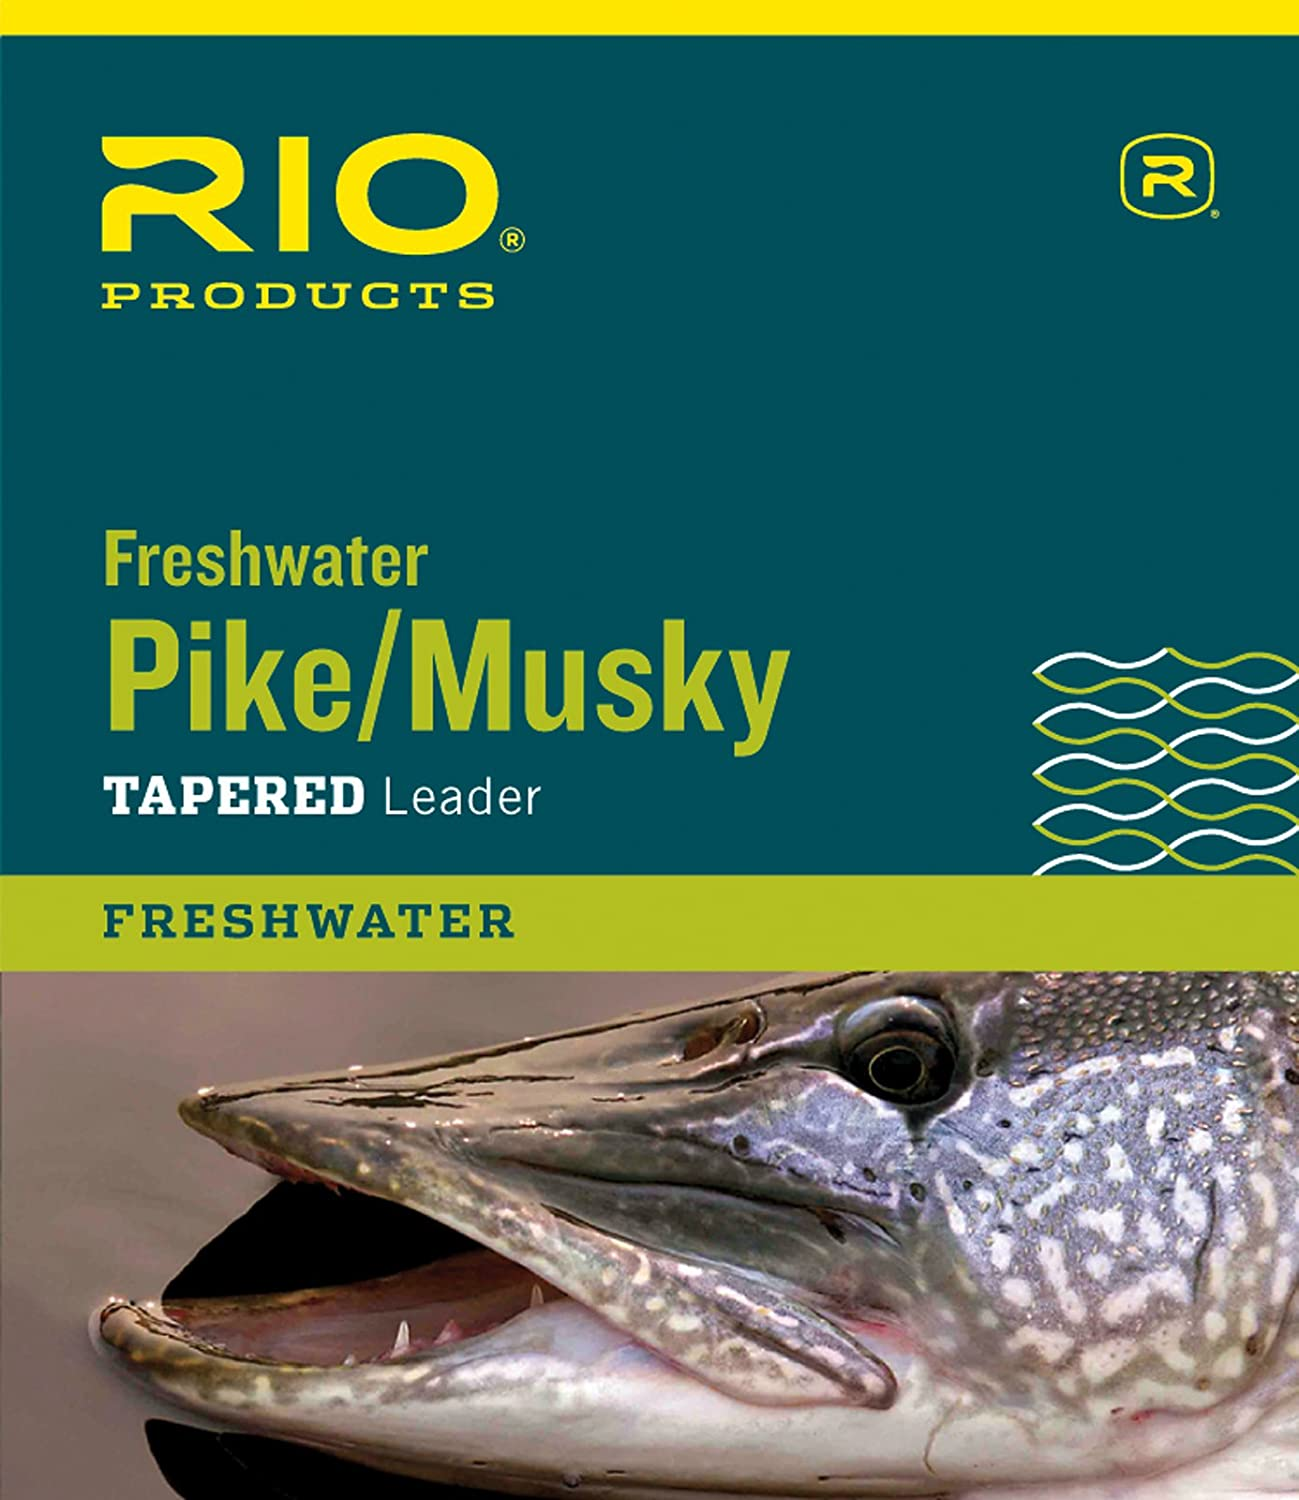 transparent Rio Fly Angeln Pike//KY II 7,5/9,1/kg Class 6,8/kg Edelstahl Draht mit Snap Angeln Leaders